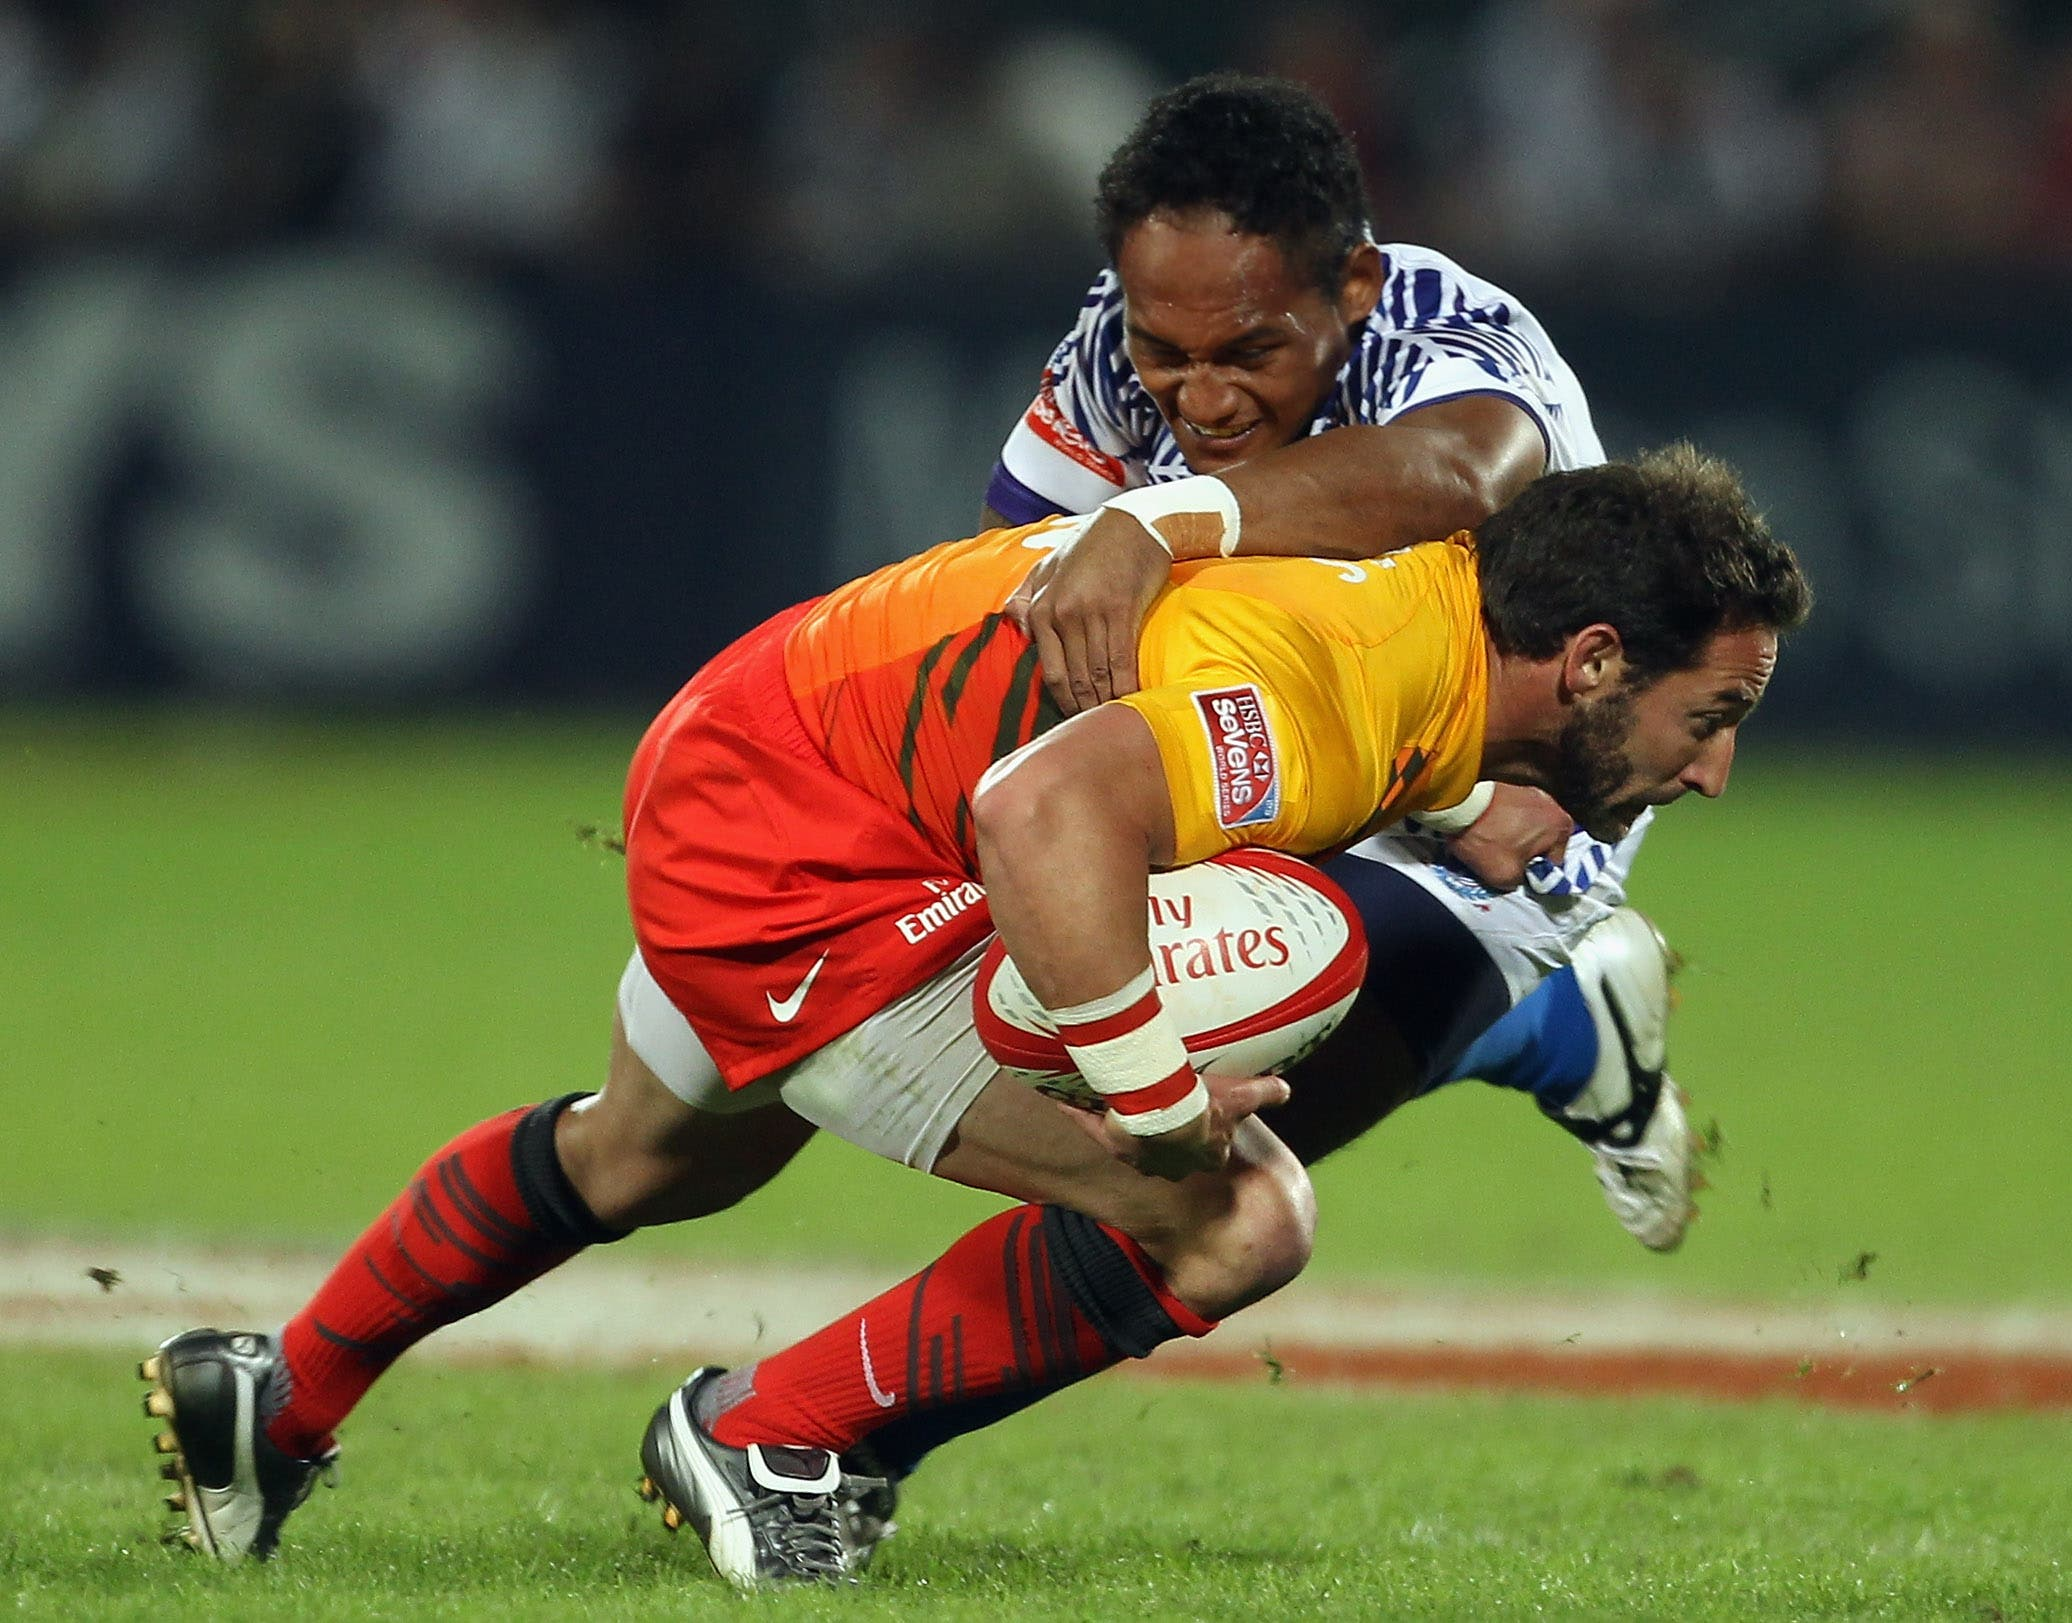 Rugby has always been considered a game for the gentleman and the sportsman, though it doesn't always look that way.